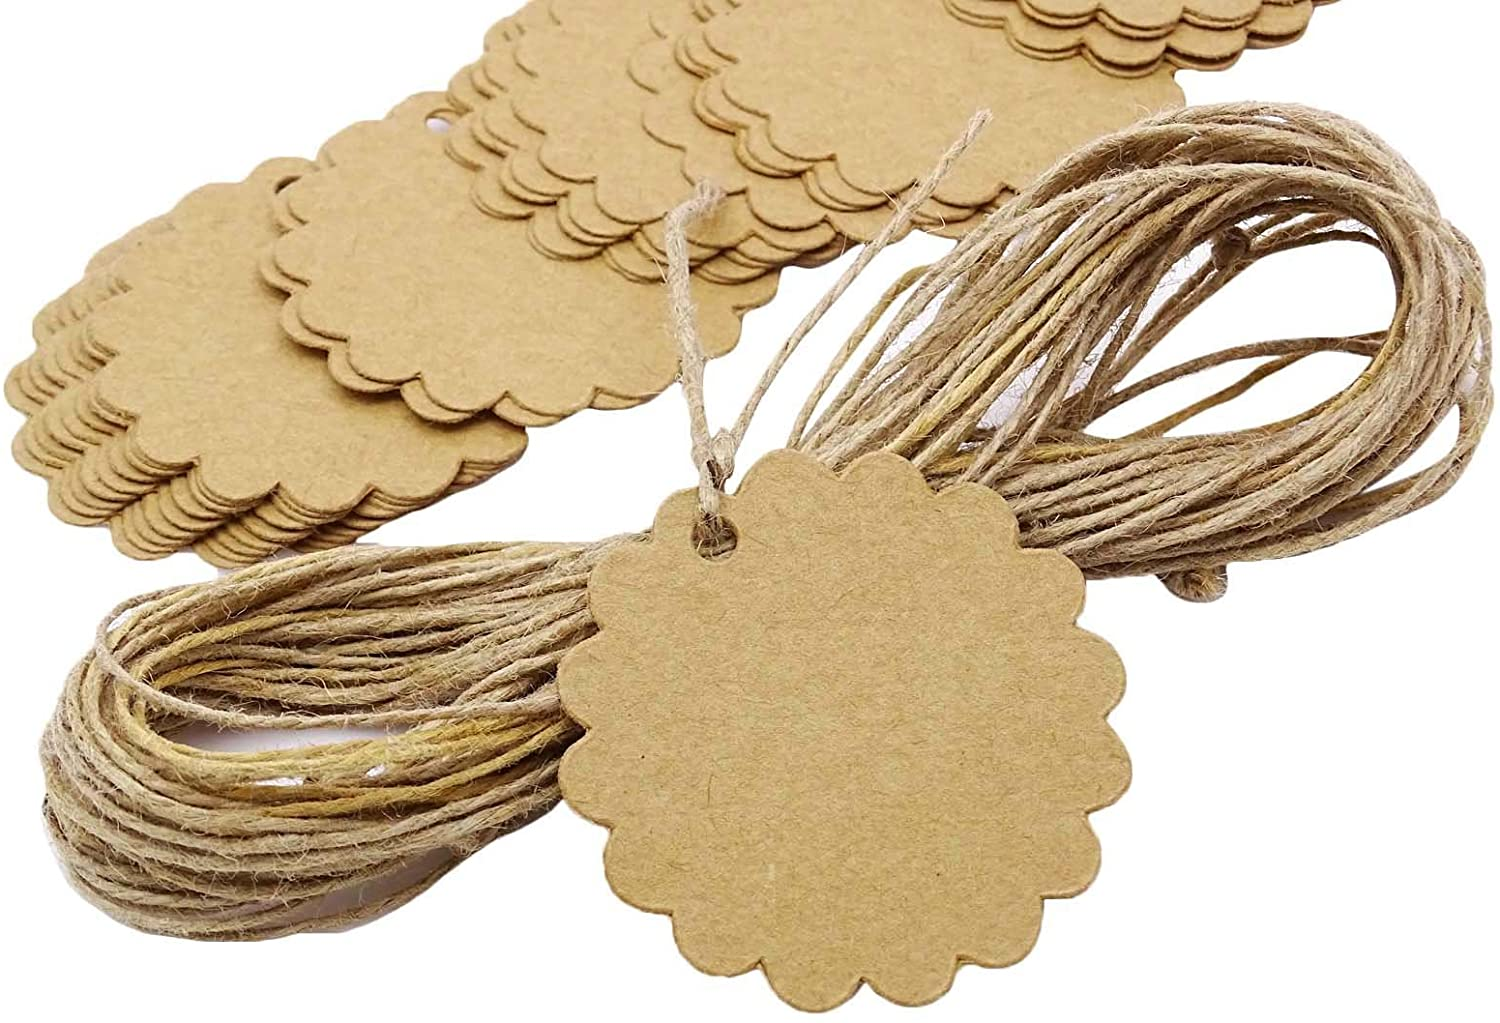 100 PCS Scalloped Wedding Brown Kraft Paper Tag Bonbonniere Favor Lolly Bag Gift Tags with Jute Twines